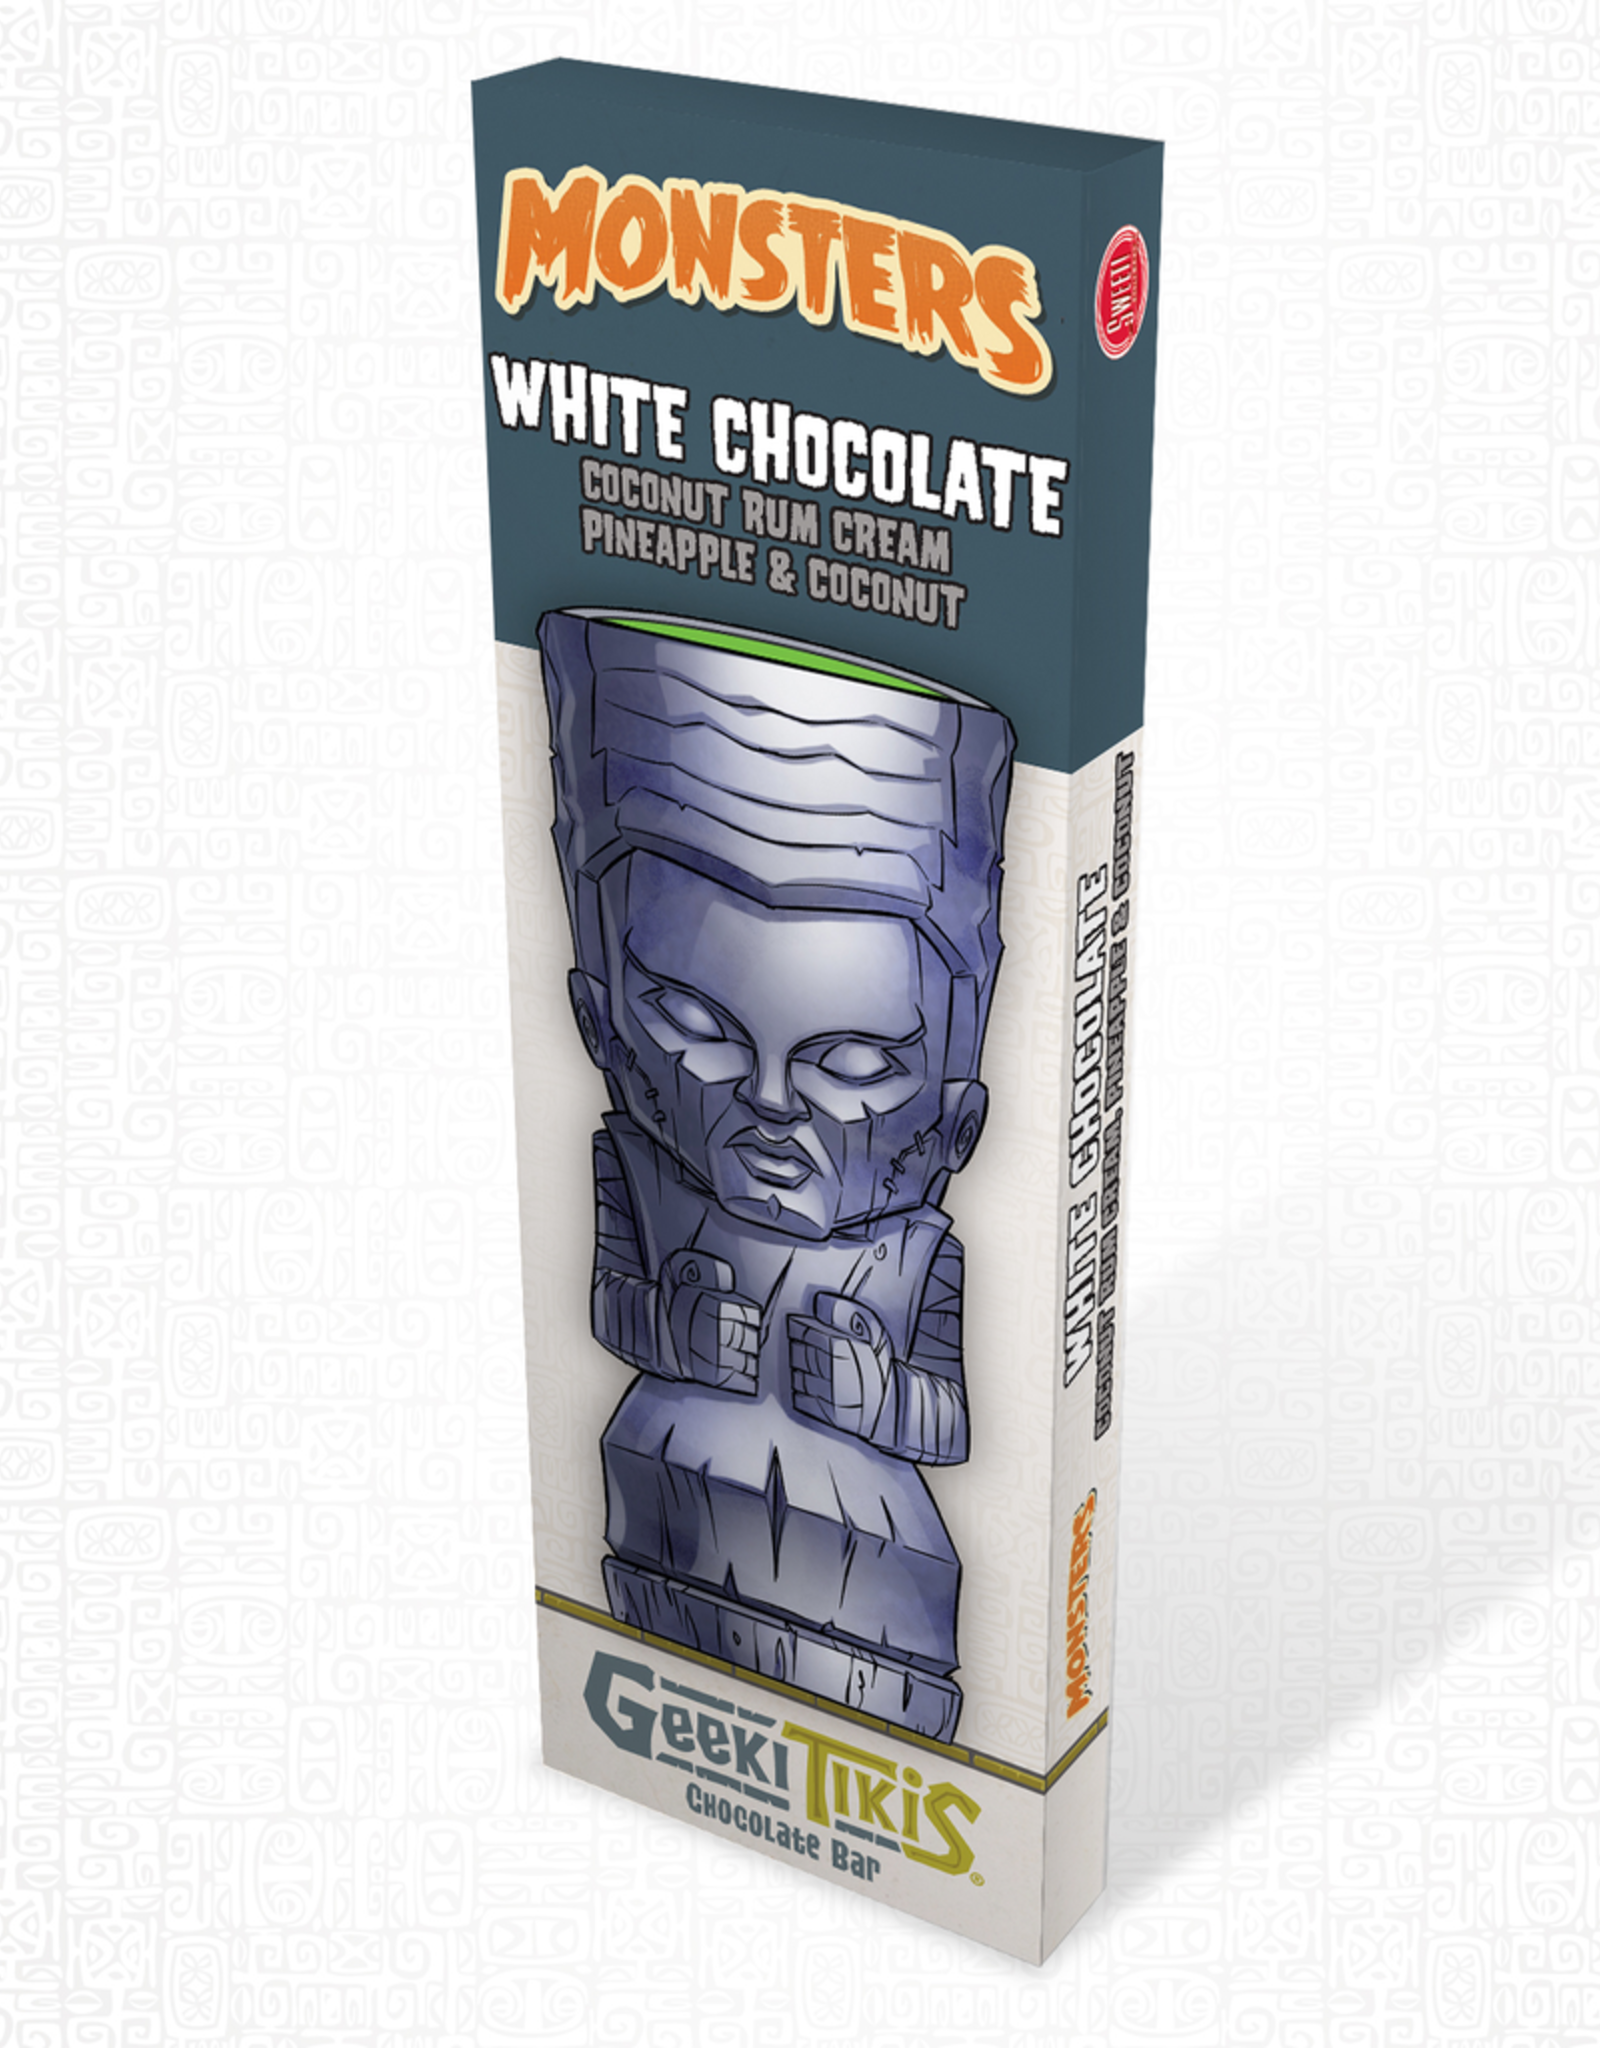 Monsters Geeki Tikis Monsters Bride of Frankenstein White Chocolate, Coconut Rum Cream, & Coconut